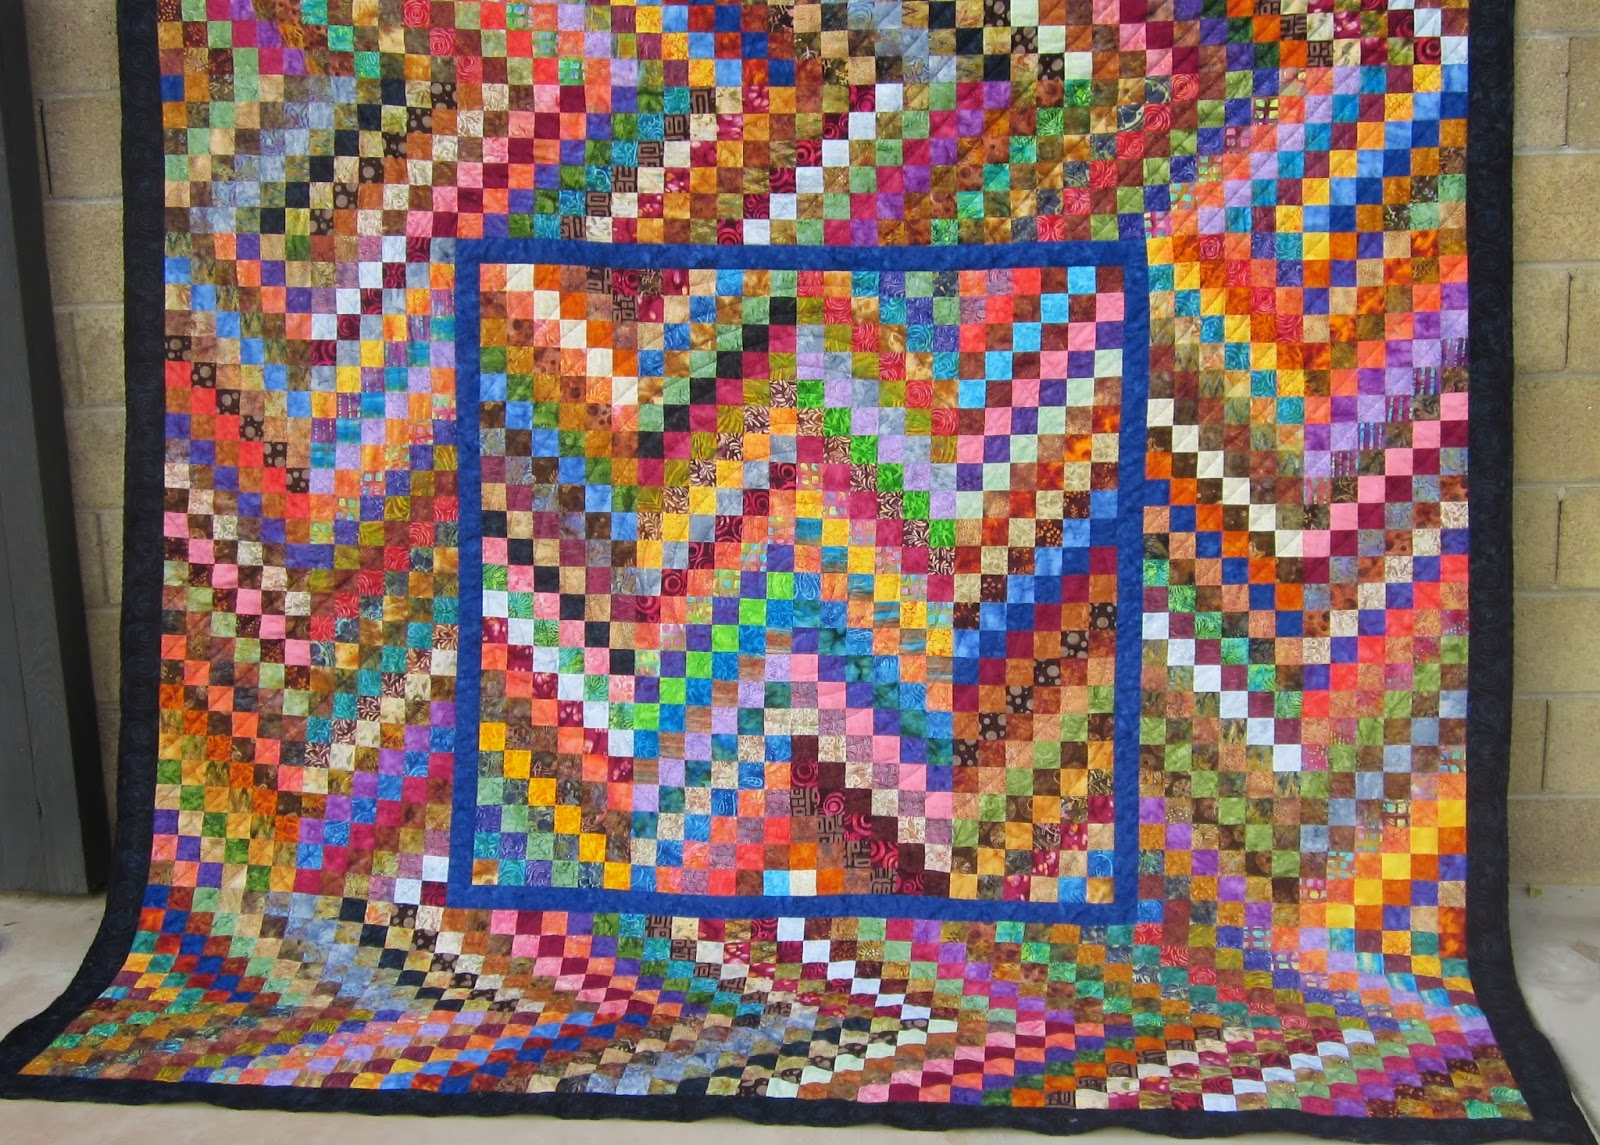 http://www.quiltparadigm.blogspot.com/2014/02/doing-happy-dance.html